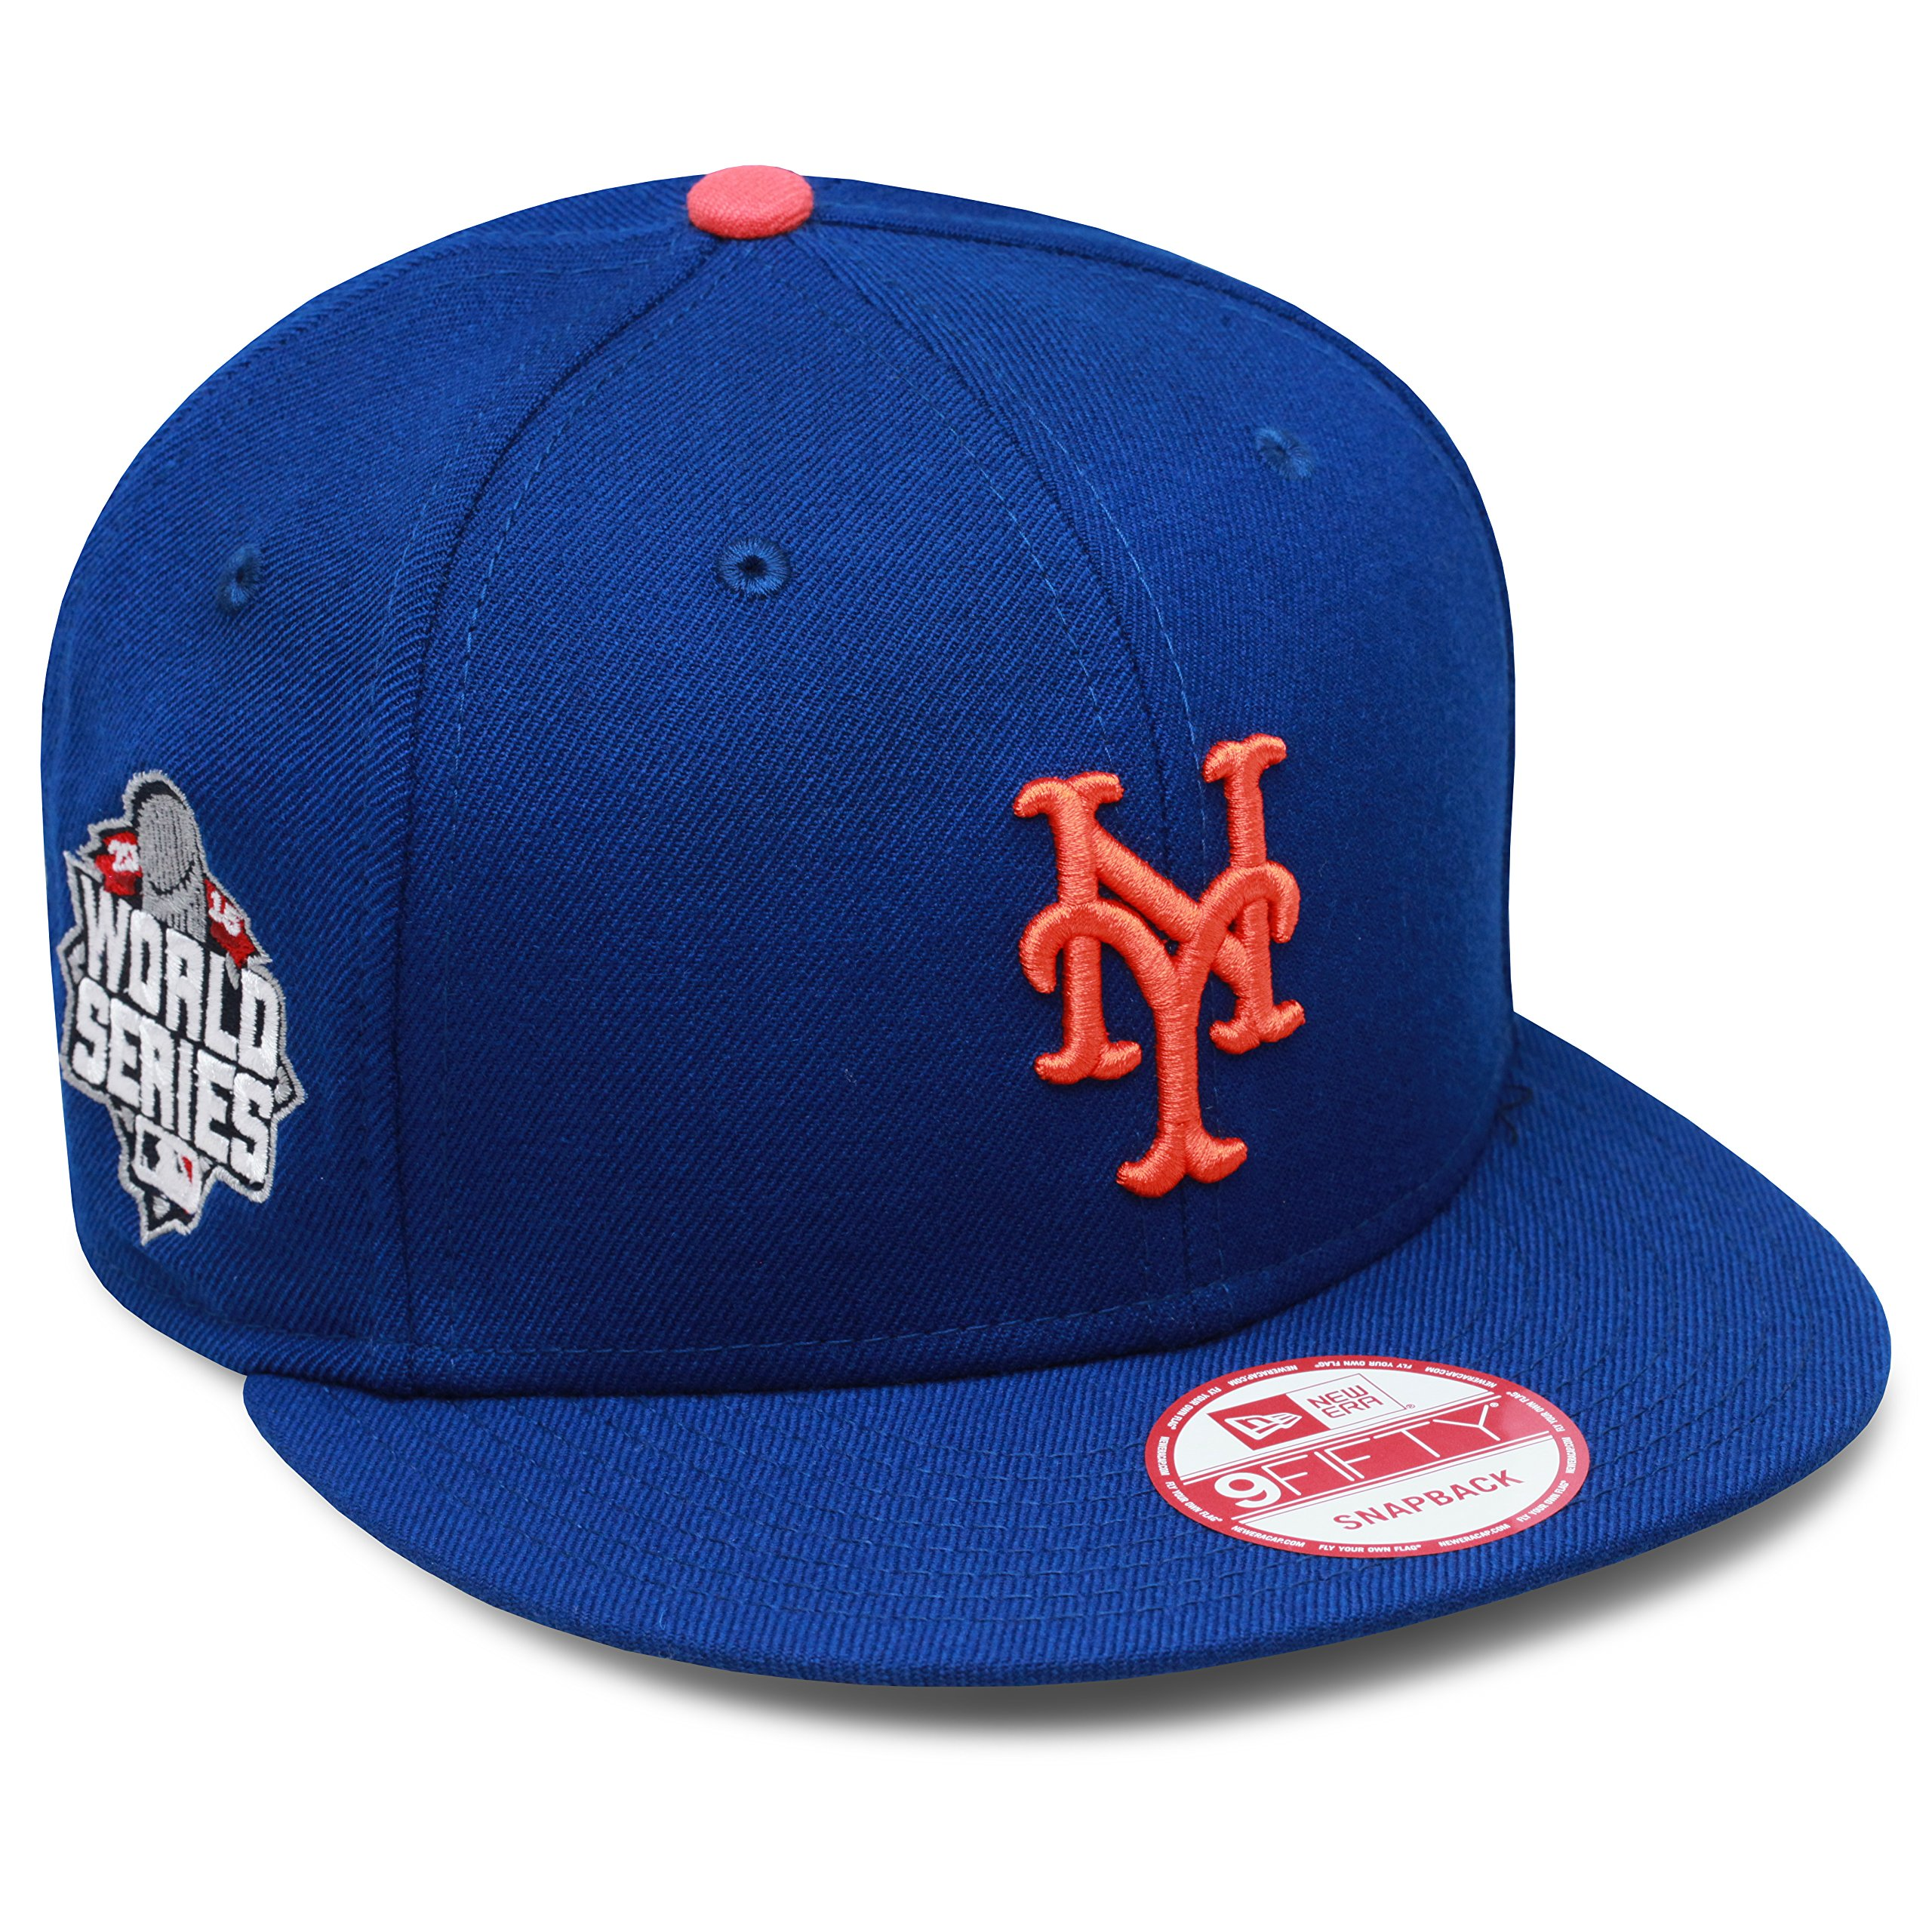 New Era 9fifty New York Mets Snapback Hat Cap 2015 World Series Side Patch 6cdbbd0d581c